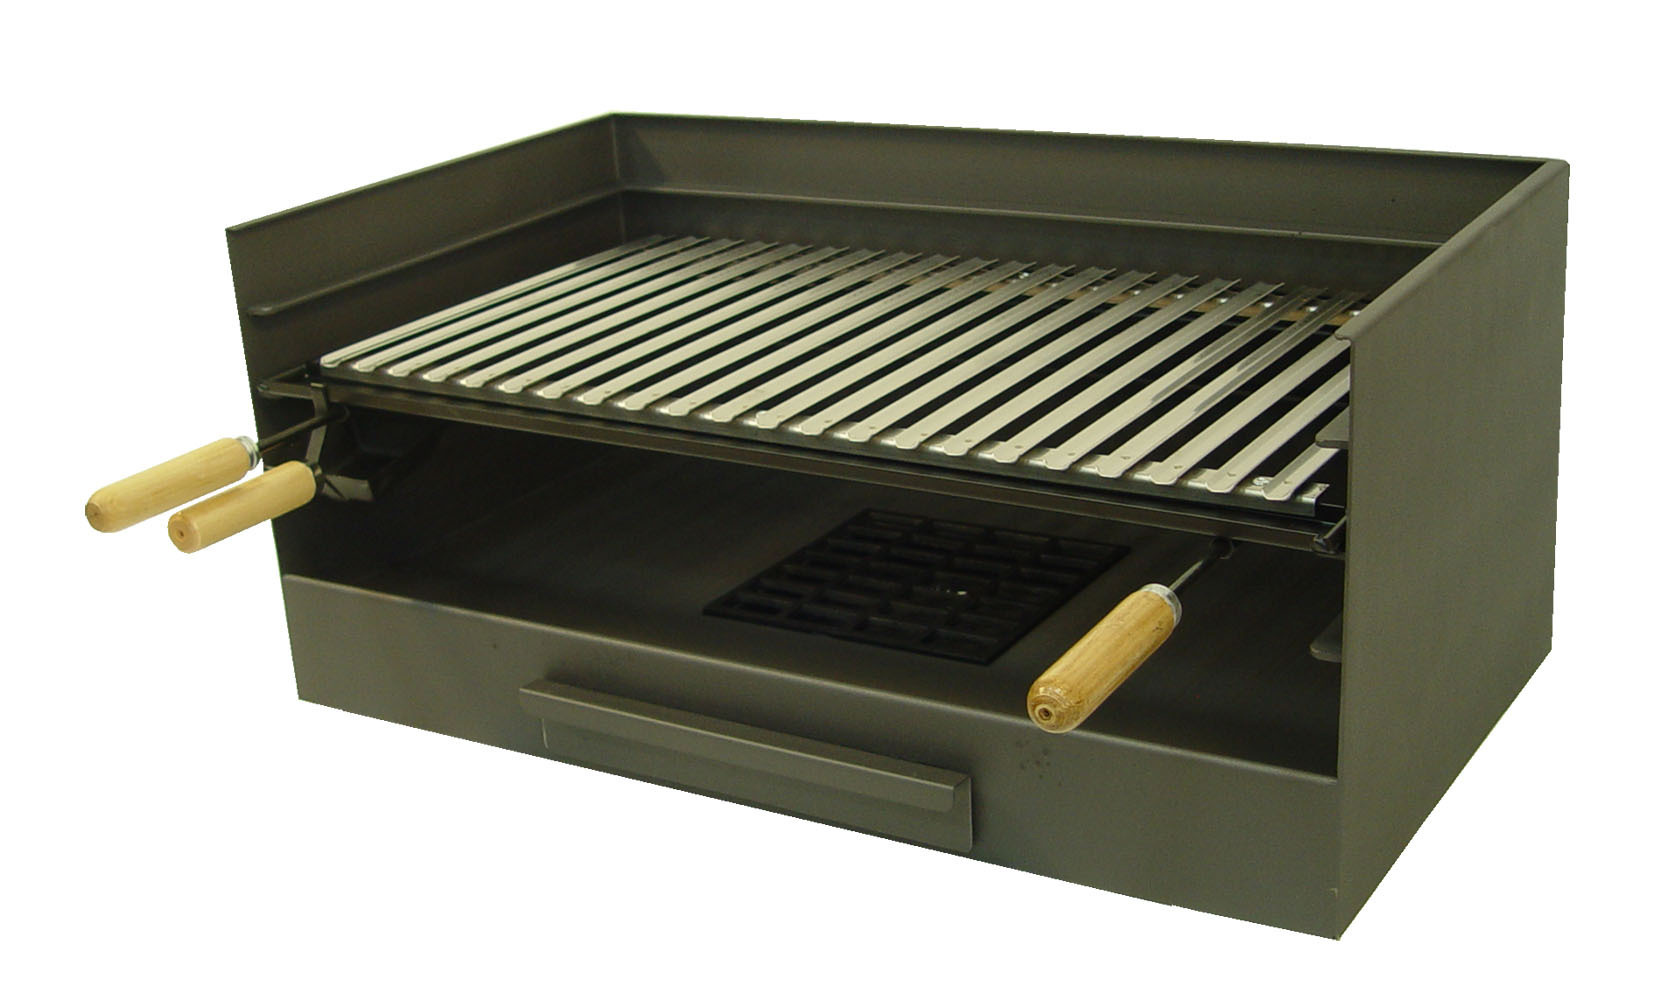 Cajon barbacoa con parrilla inox grande the barbecue store - Barbacoas de acero ...